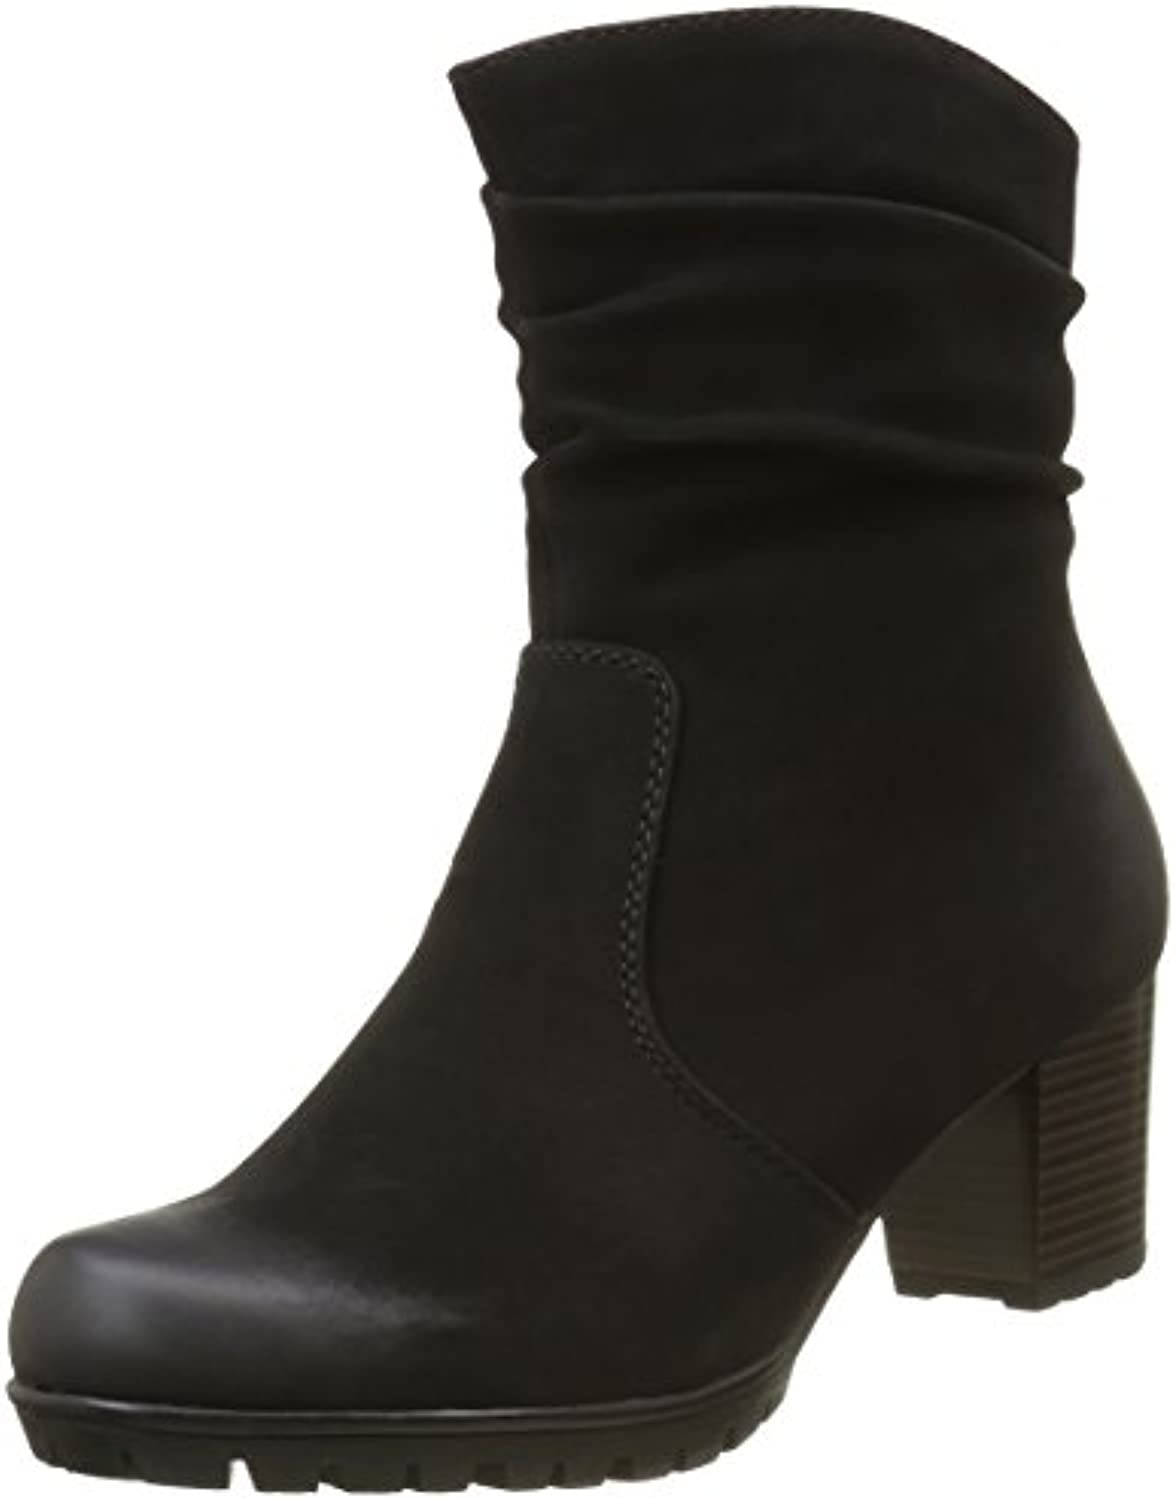 98570 rieker femmes femmes femmes & eacute; bottines b01f3k0psi parent 42d1c0